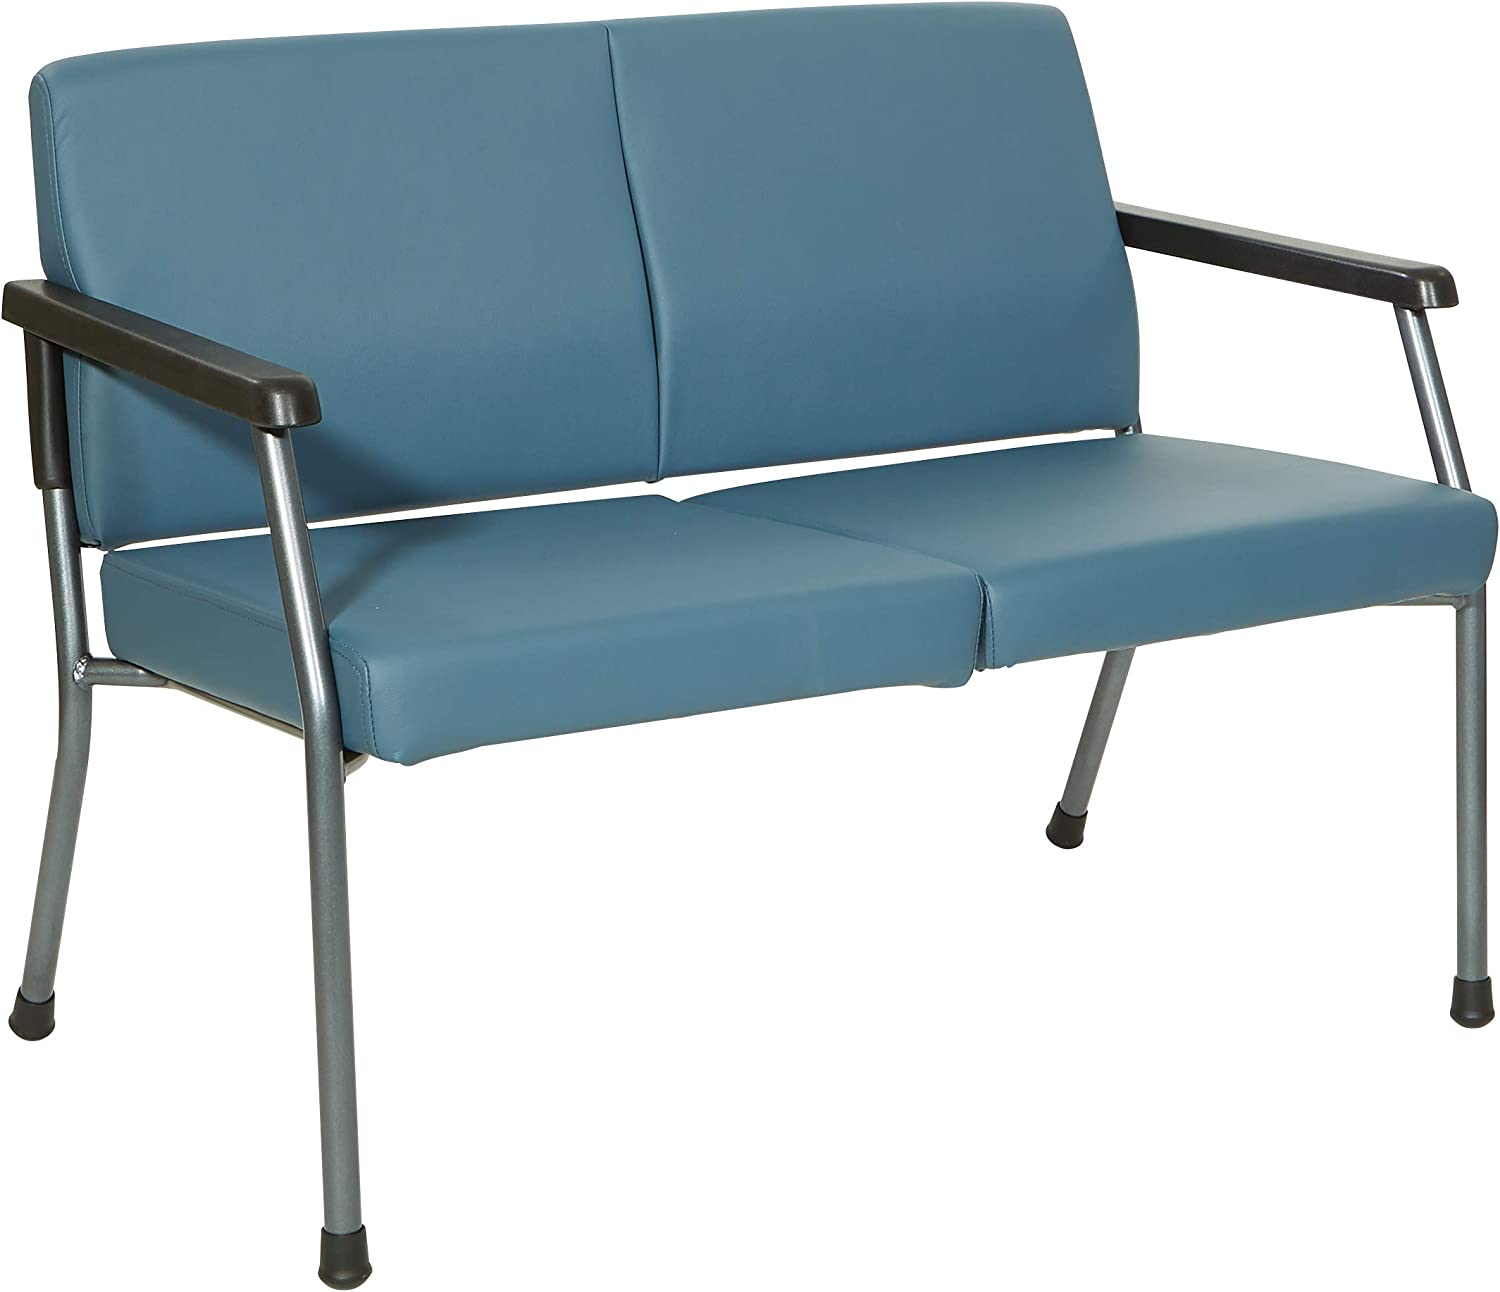 Office Star Bariatric Hip Patient Big and Tall Loveseat Medical Office Chair with Wider Seat and Sturdy Titanium Finish Metal Frame and Back Reinforcement, Dillon Blue